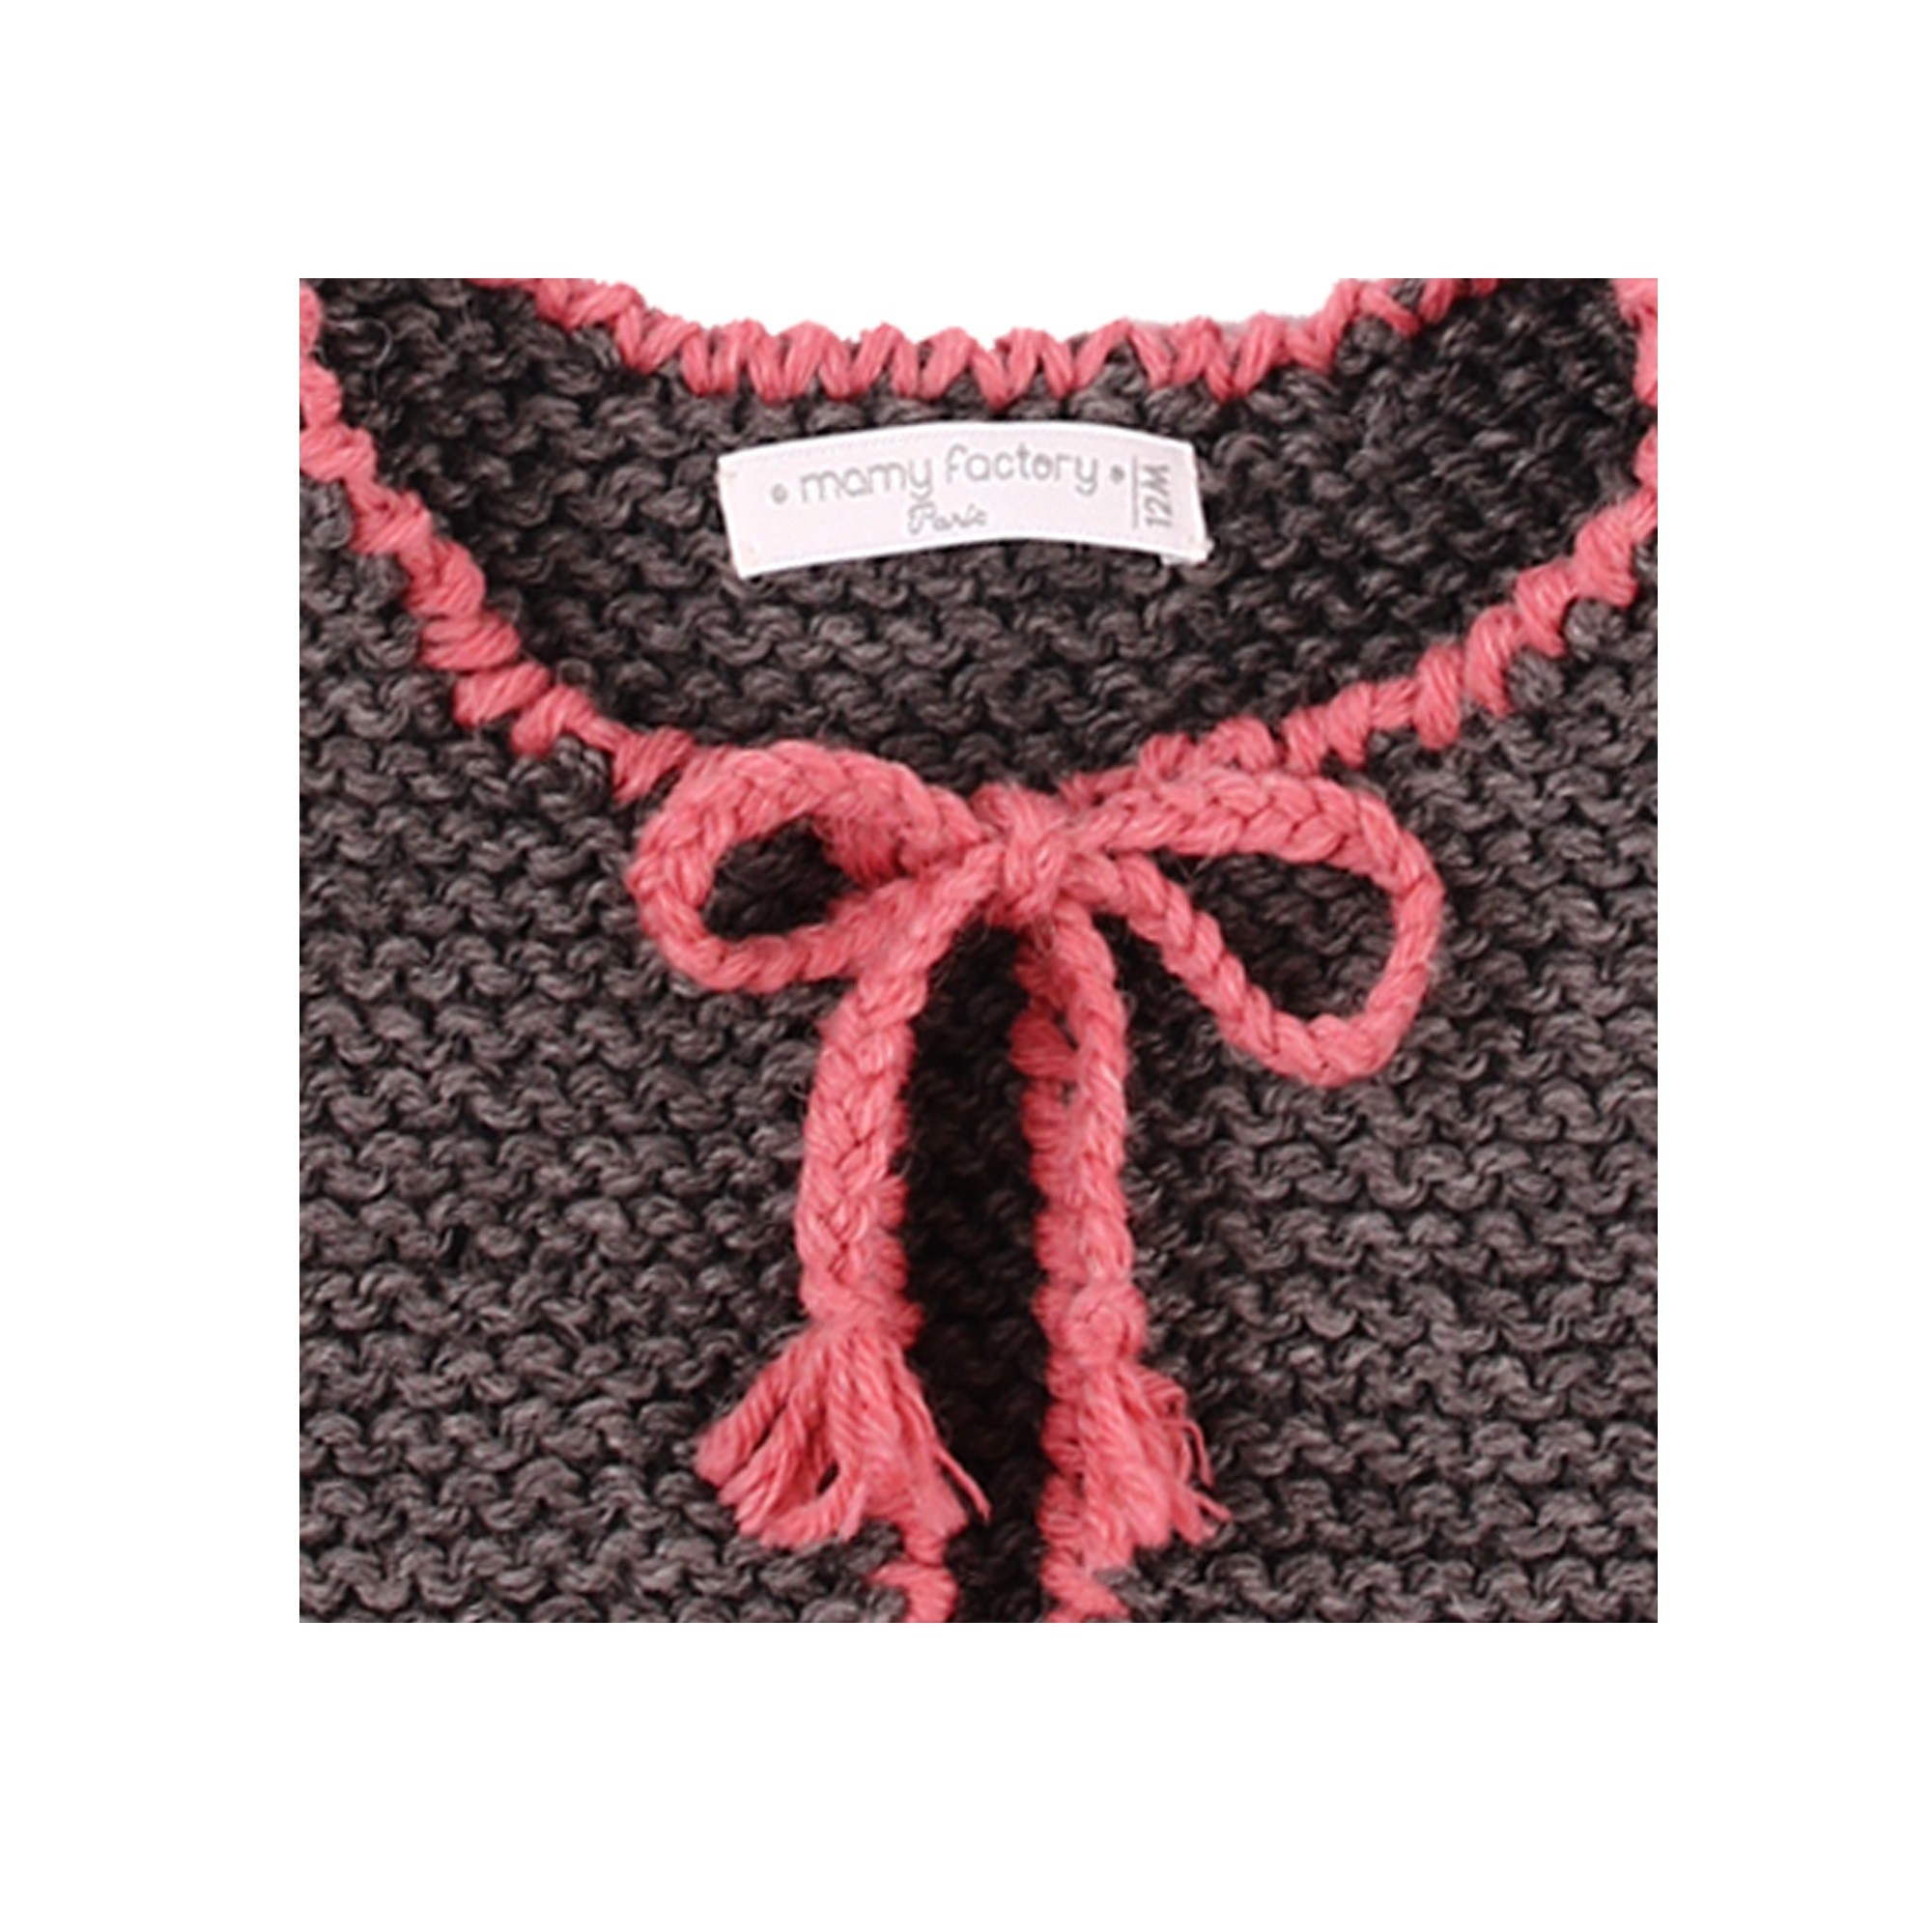 Joseph cardigan for kid - anthracite and pink colors - detail